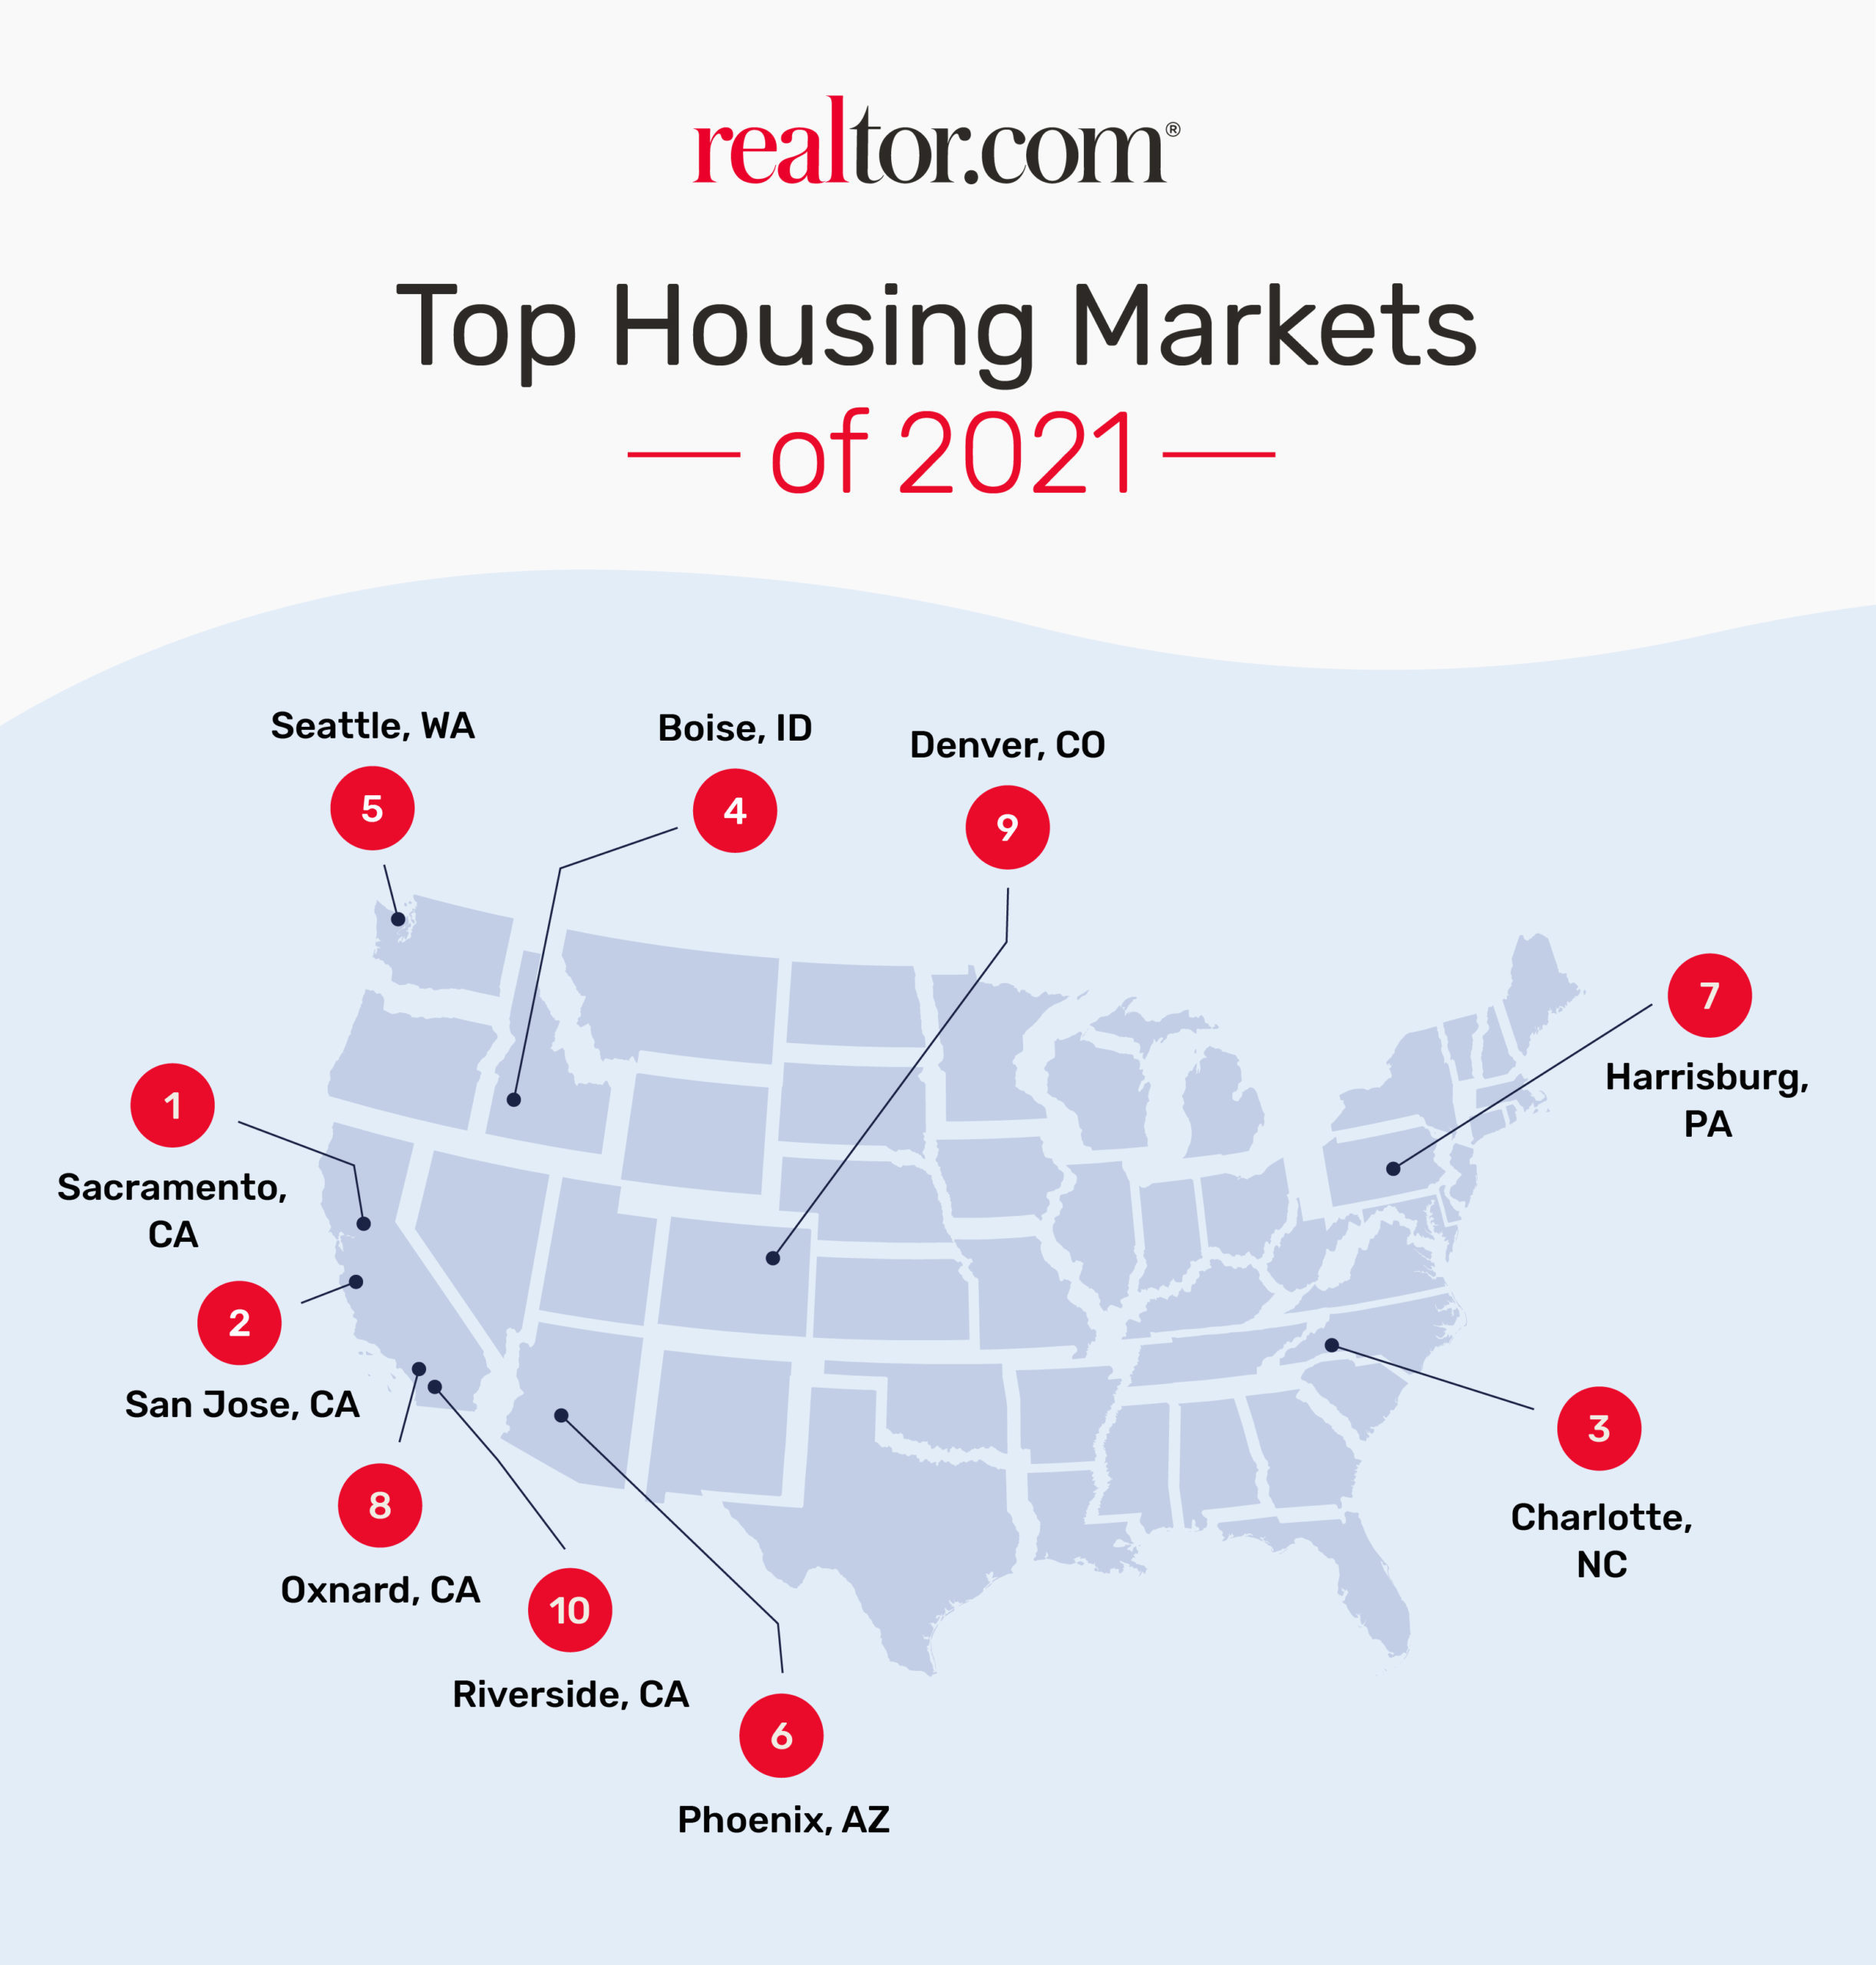 Charlotte One Of 10 Hottest Housing Markets For 2021